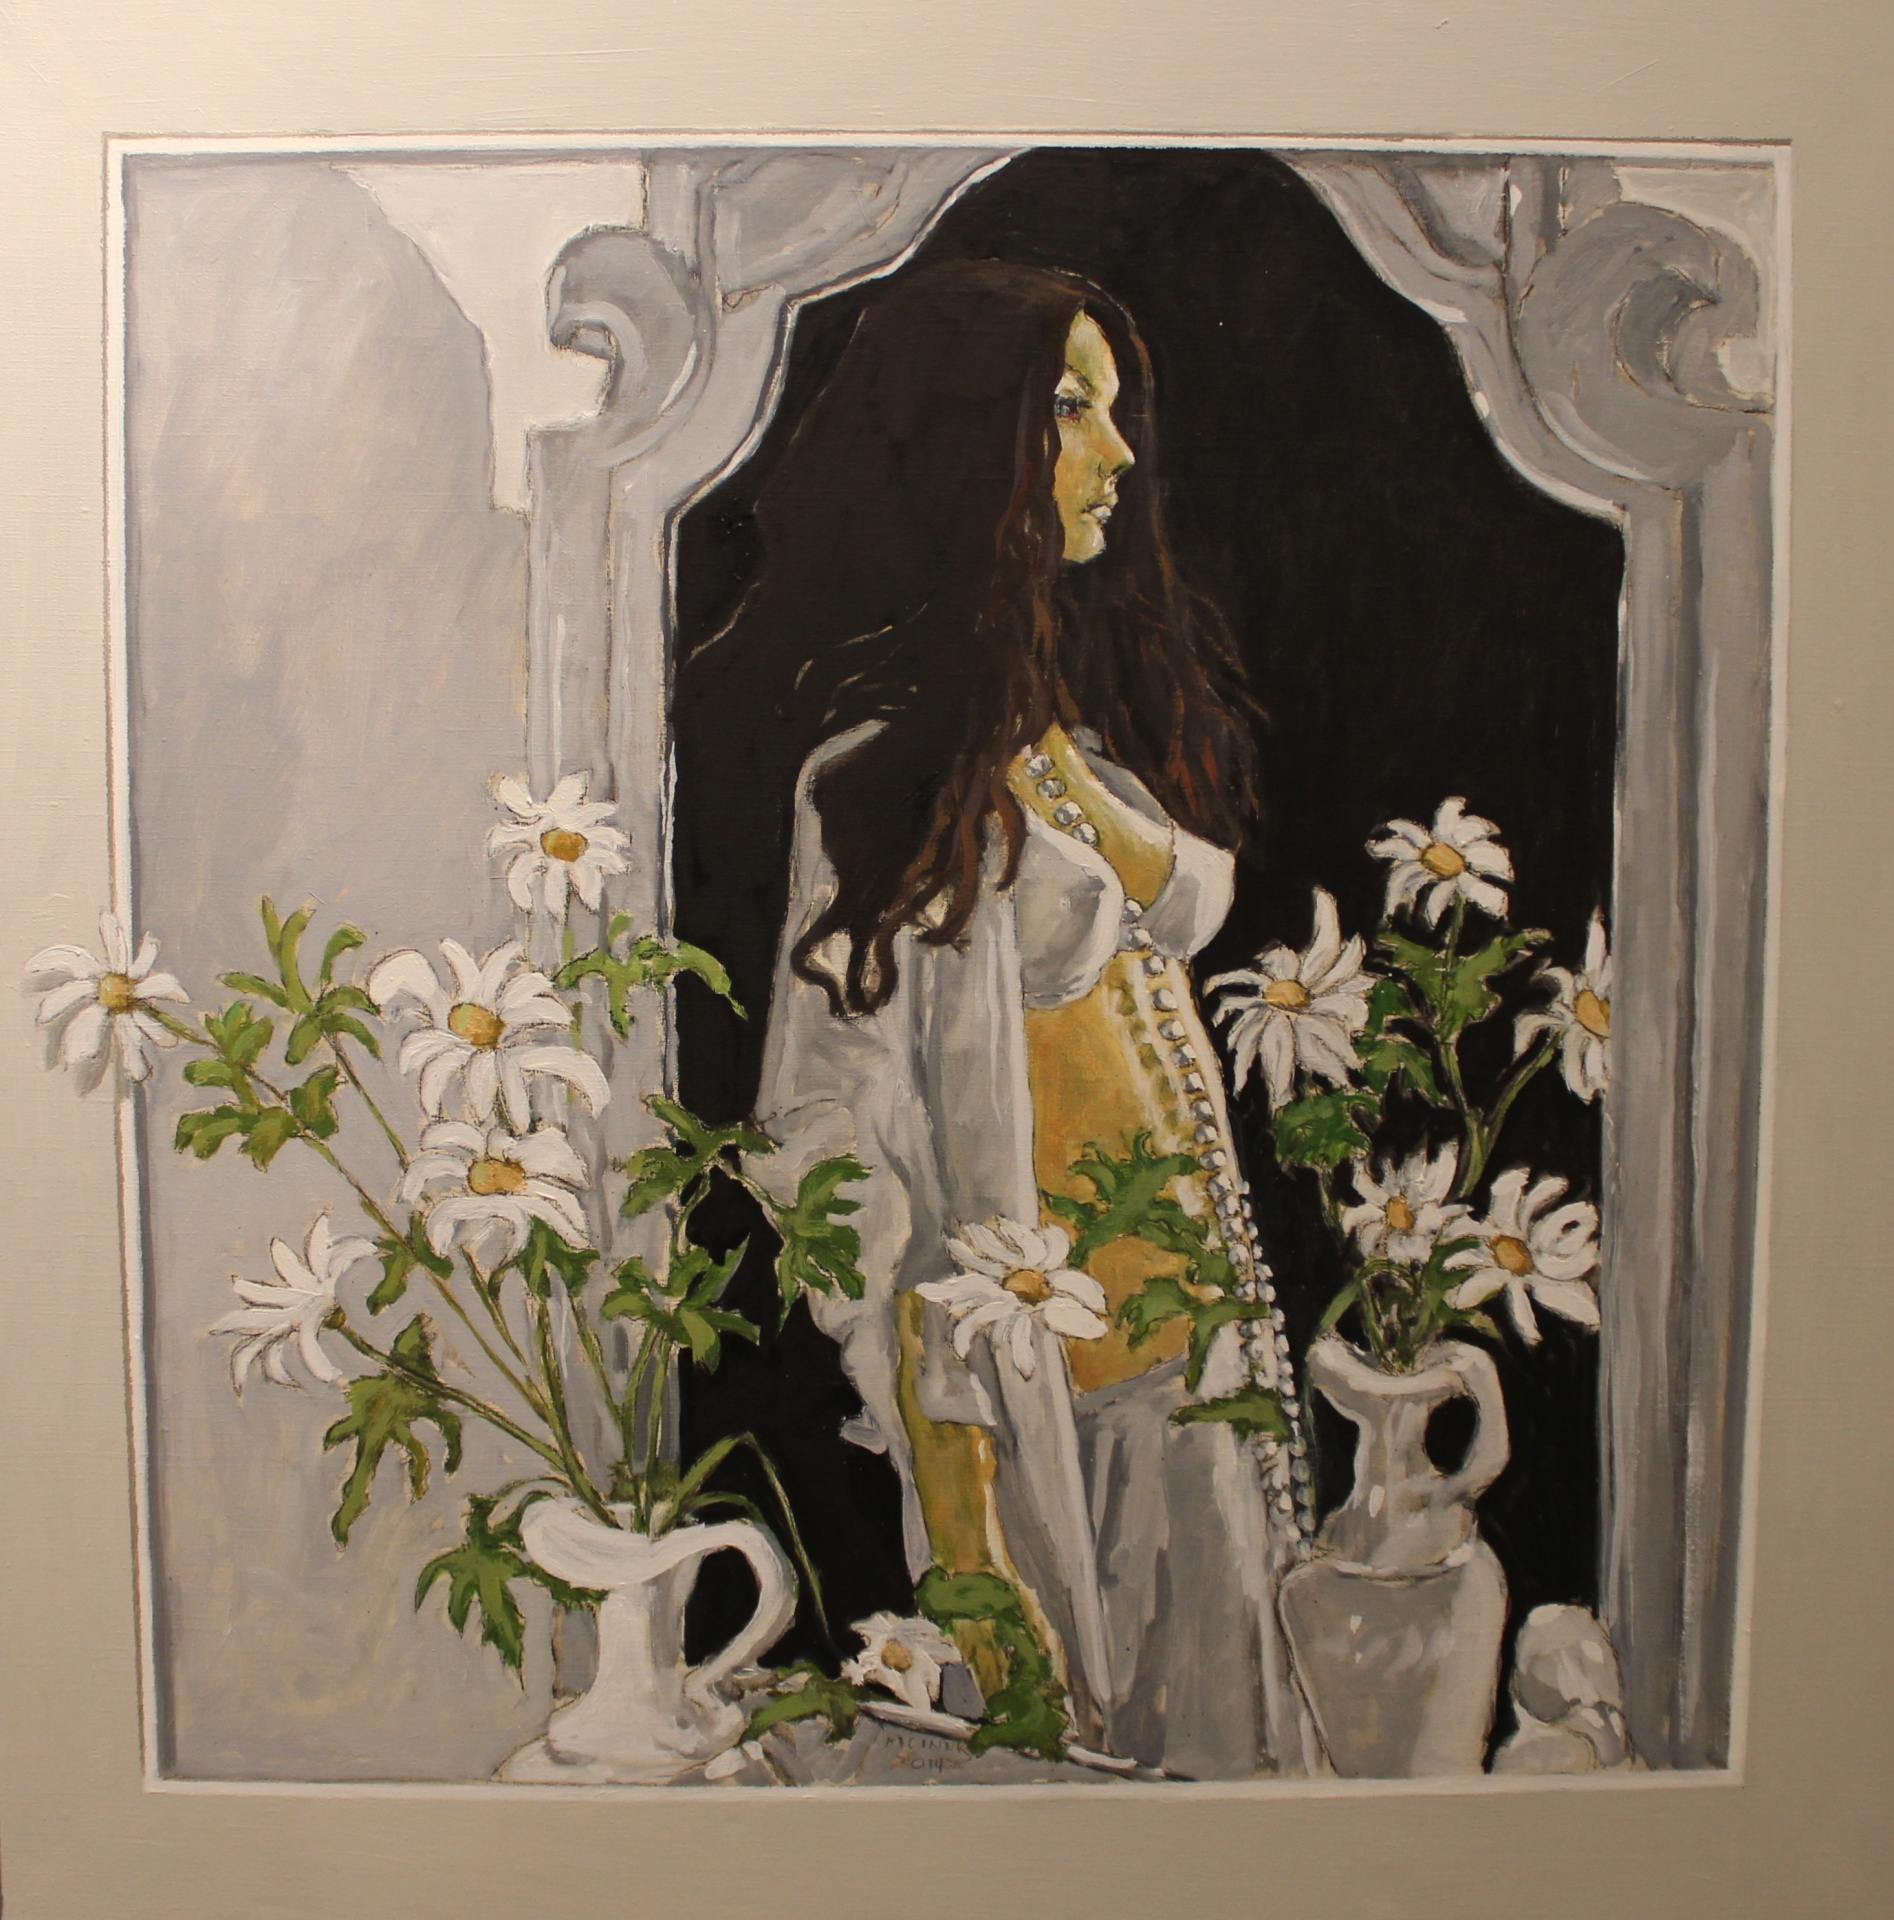 MARLA IN THE MIRROR - 30X30 - OIL ON LINEN - 2014